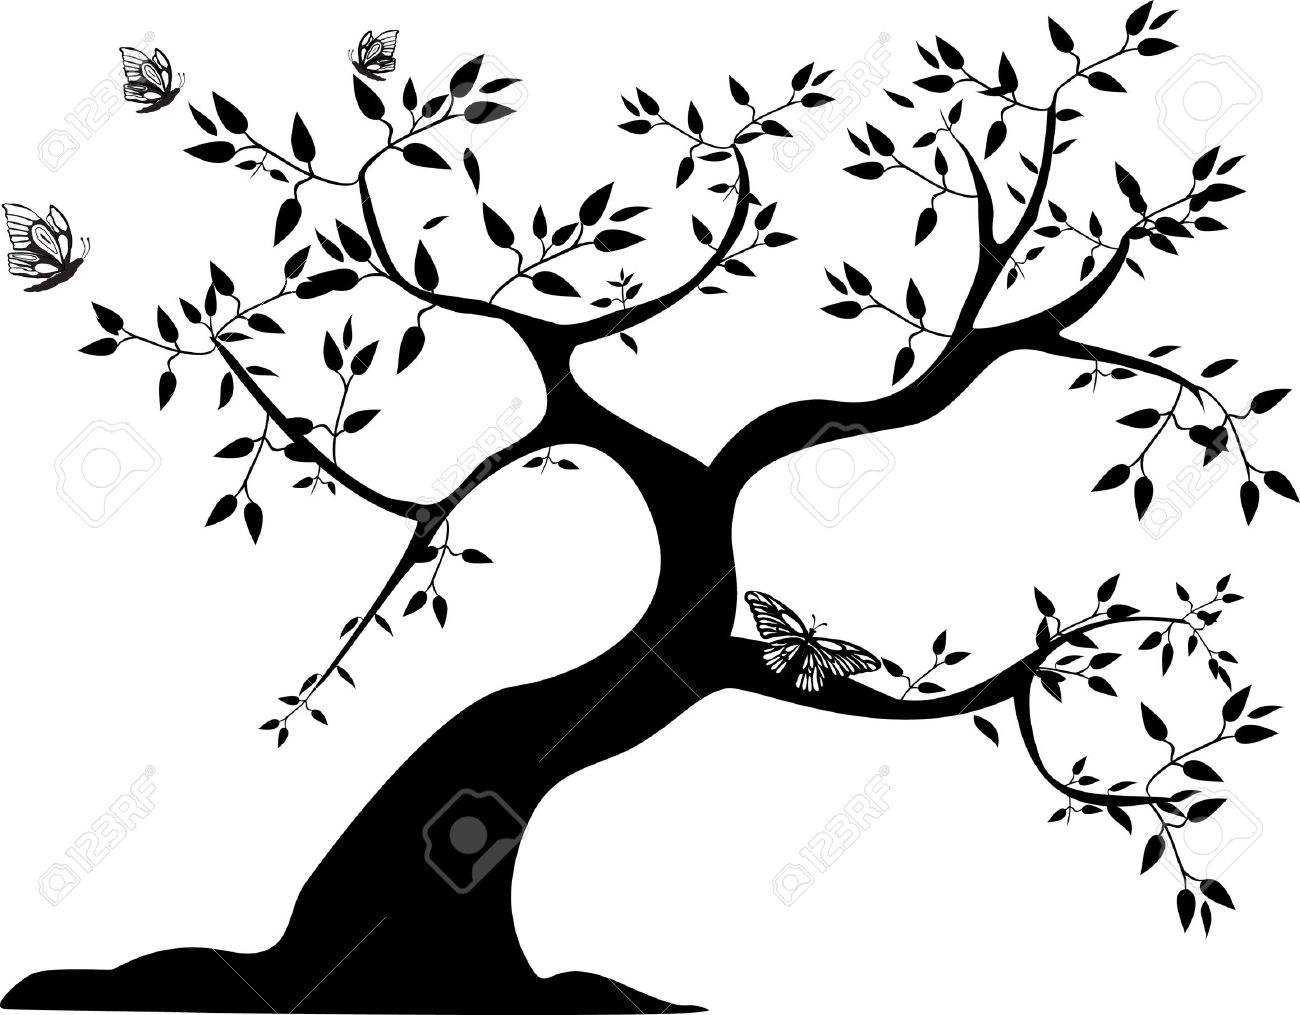 a single black tree with three butterflies - 10283292